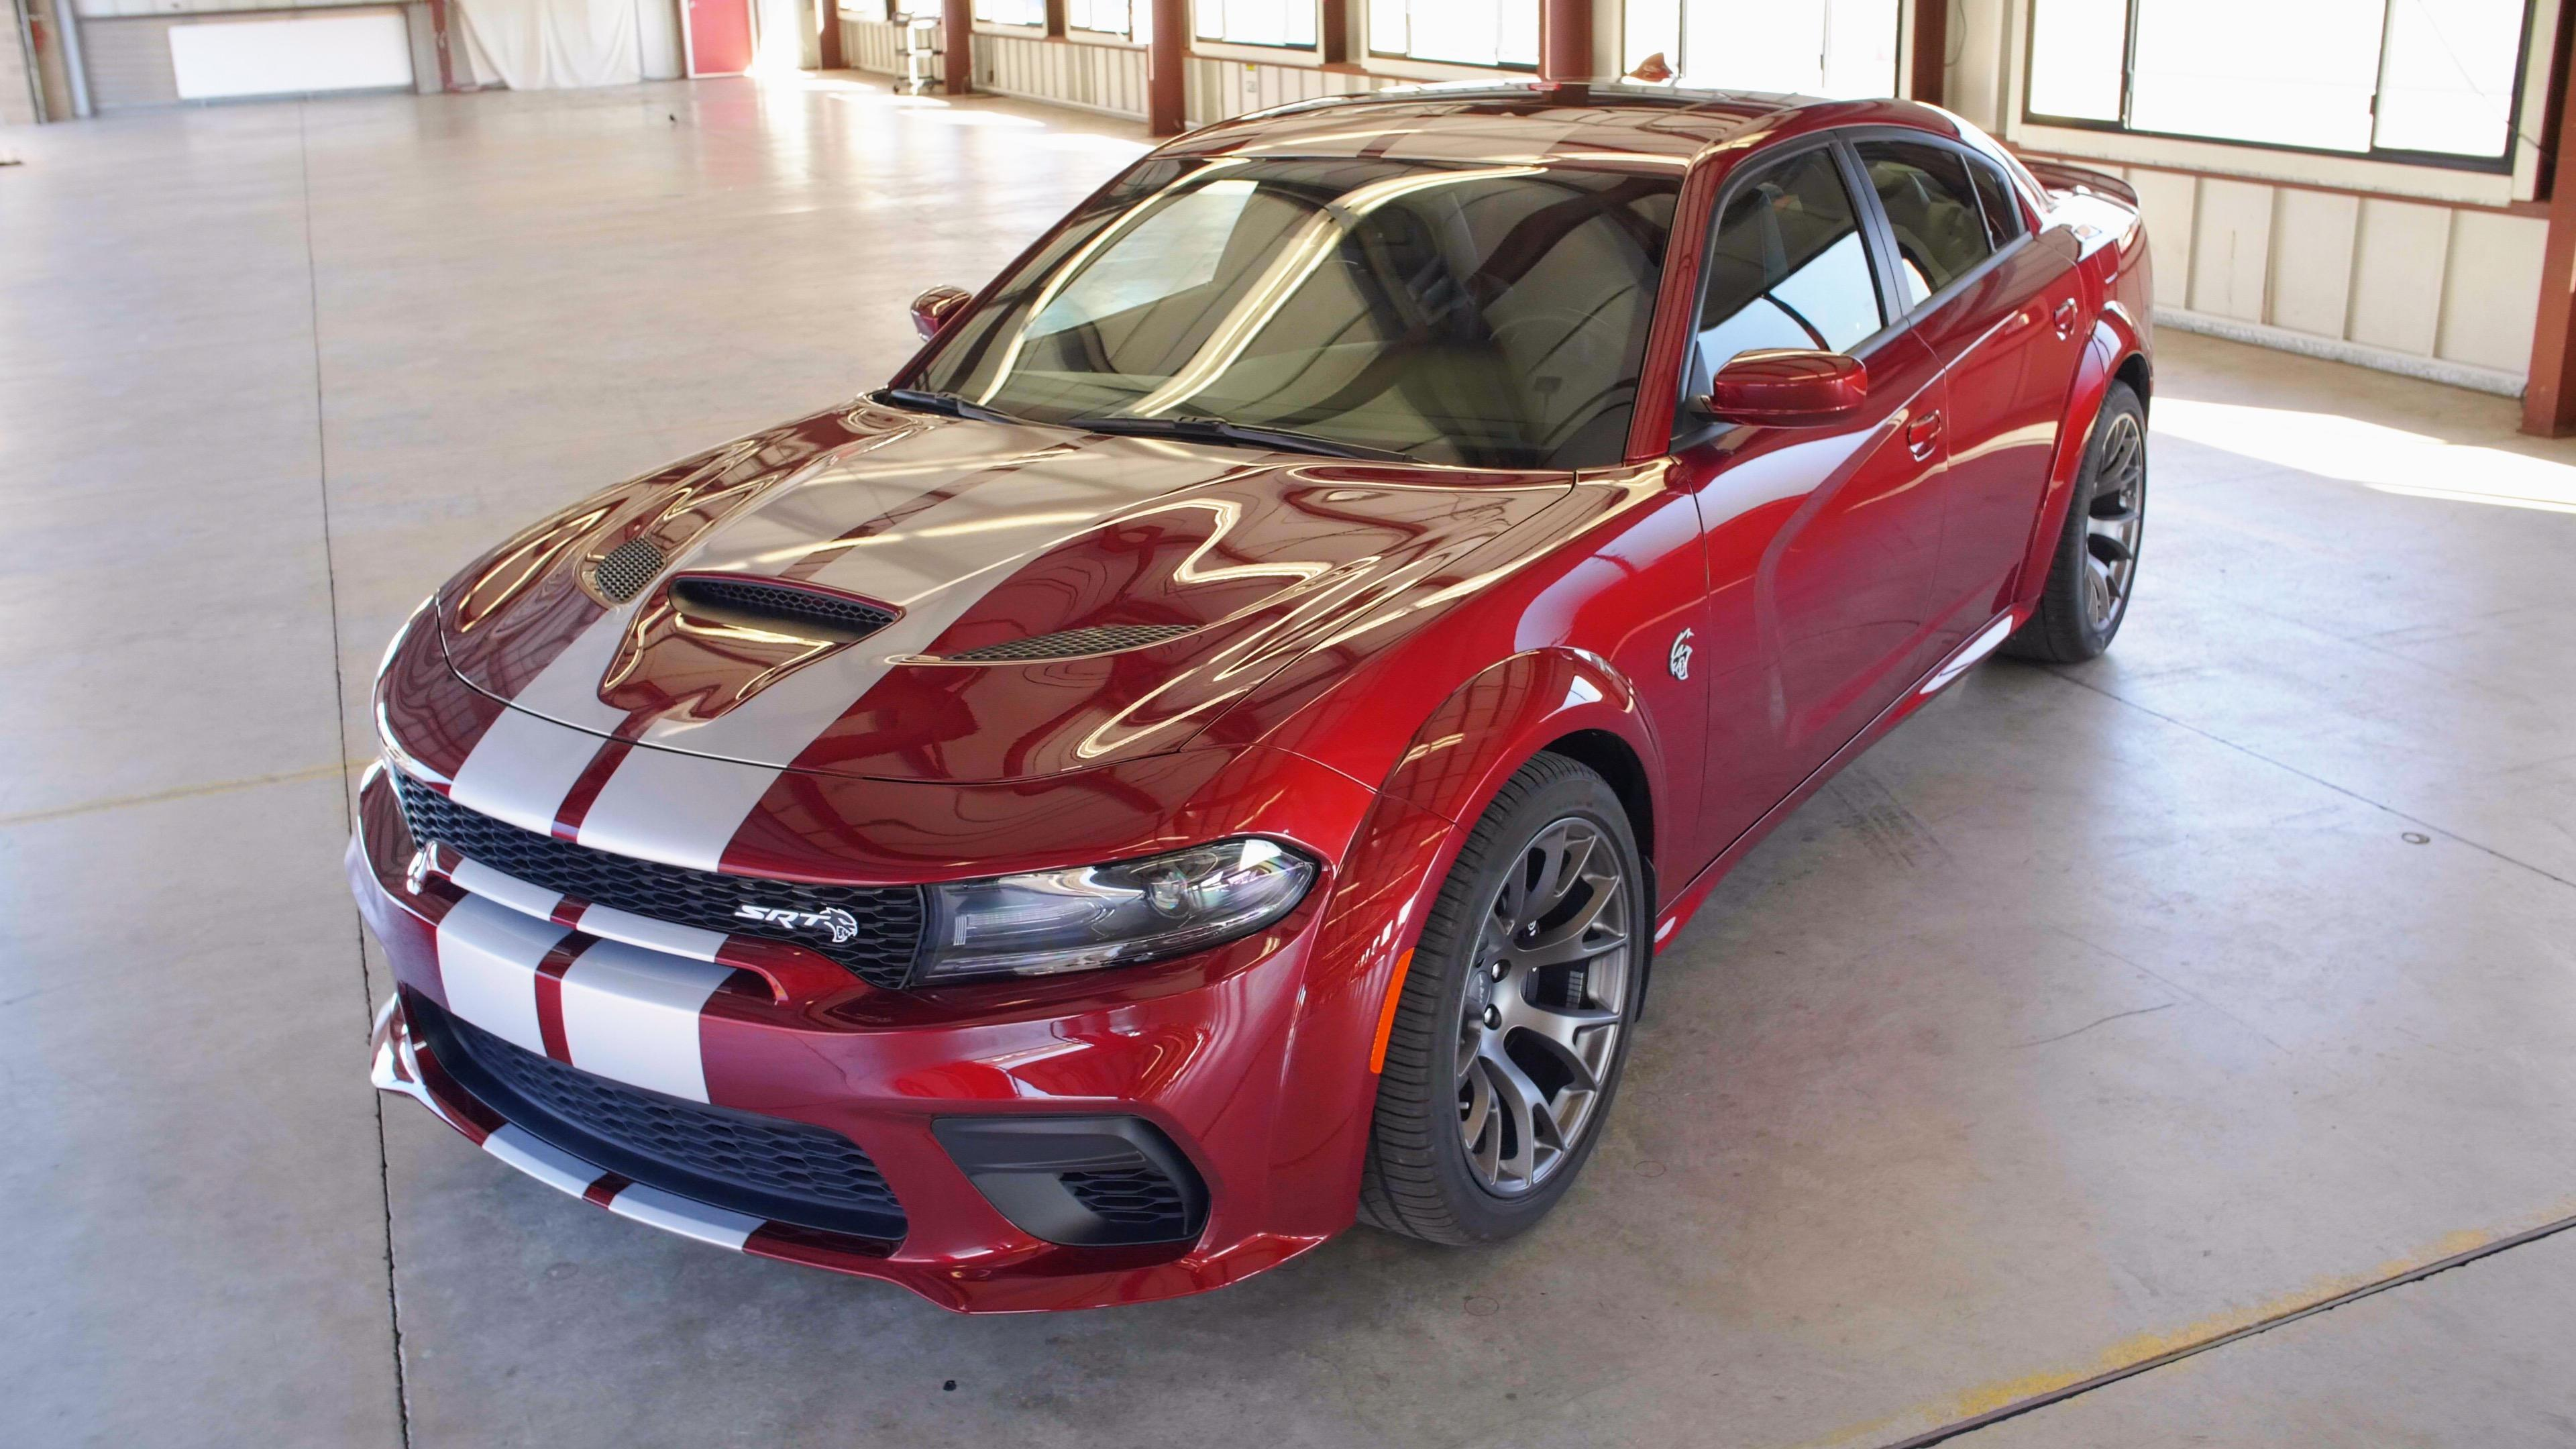 Video: 2020 Dodge Charger SRT Hellcat Widebody: A trackable muscle car